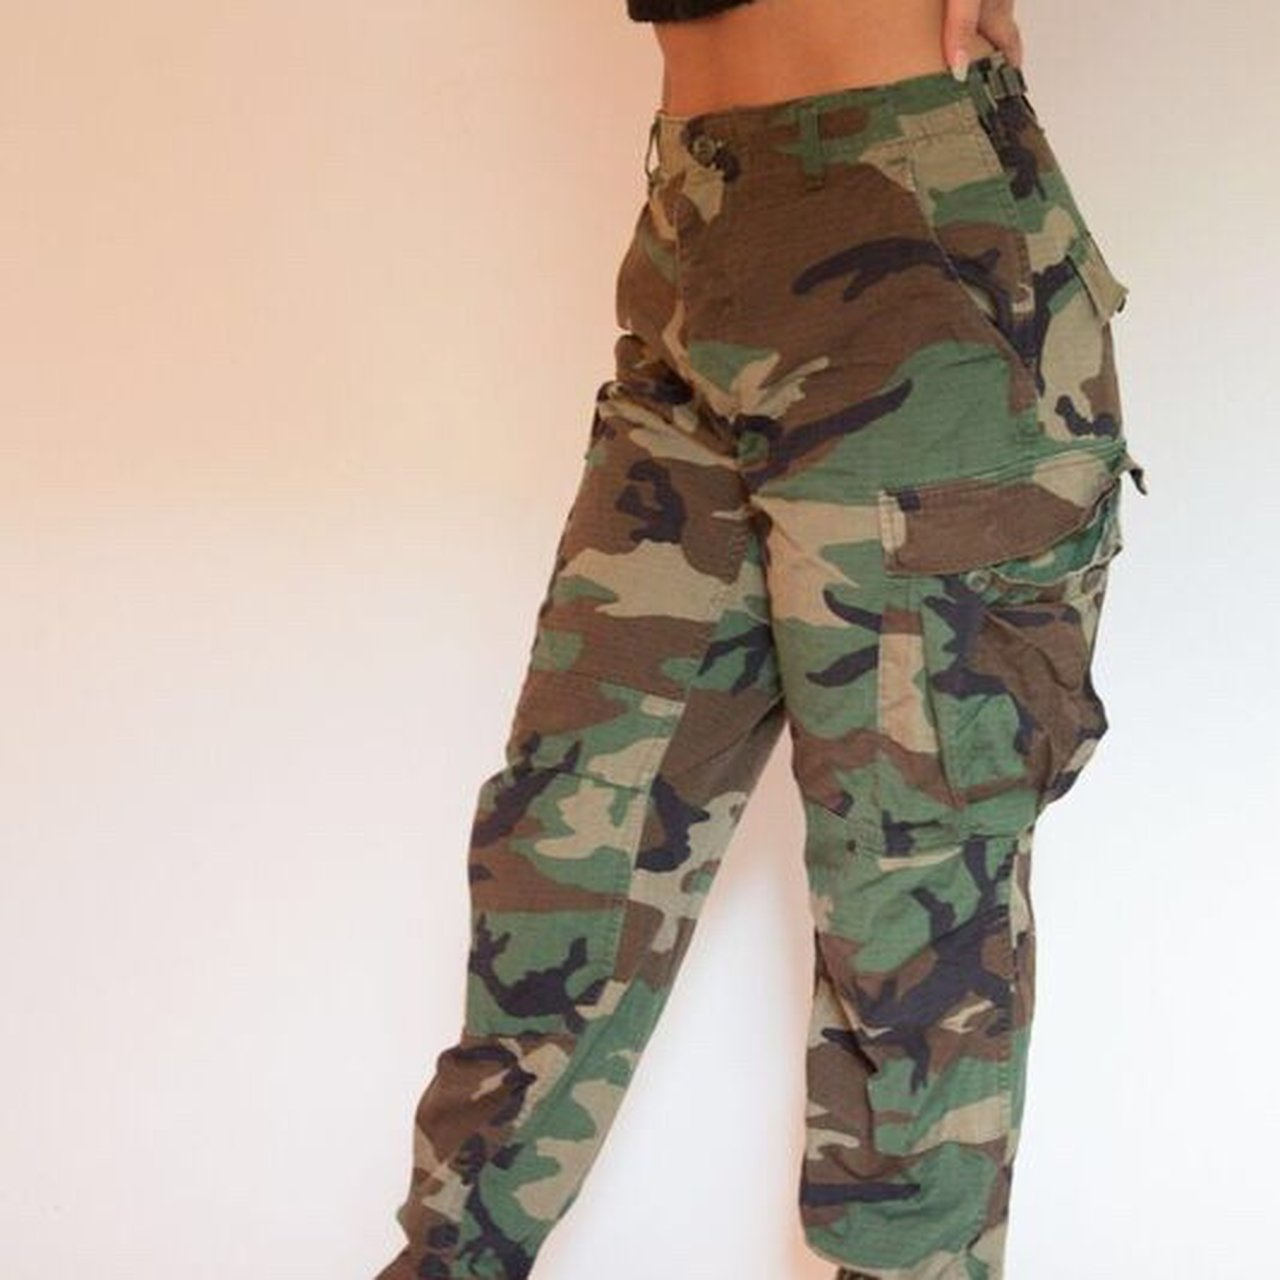 Authentic Army Camo pants Will fit sizes 6-8 Waist  ties - Depop 7801c0896d4